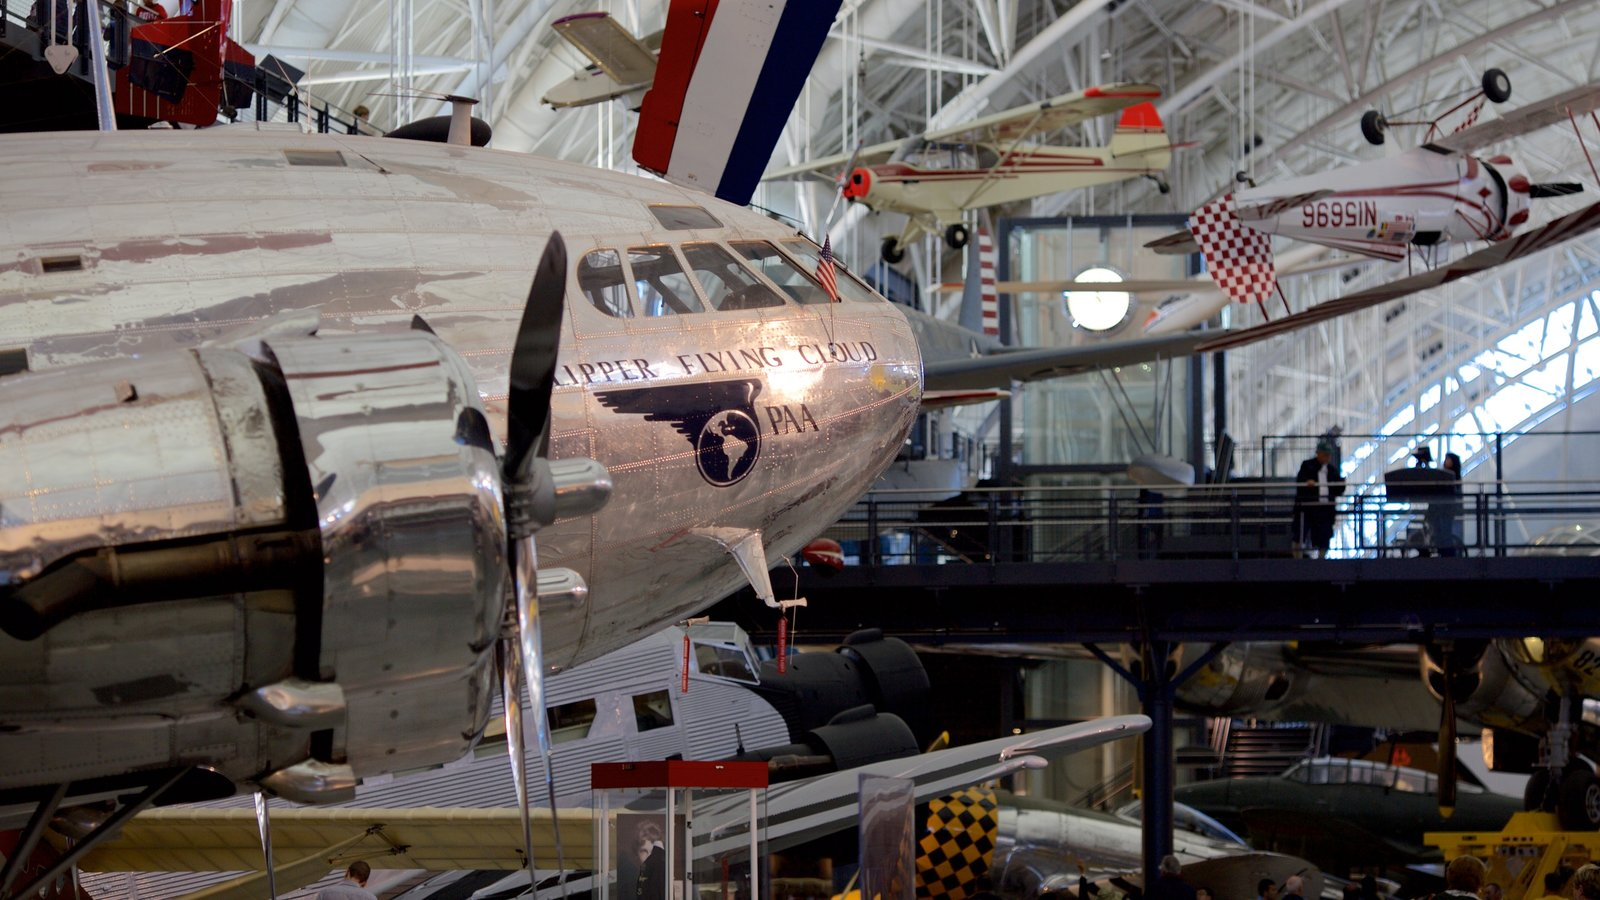 National Air and Space Museum Steven F. Udvar-Hazy Center showing aircraft and interior views